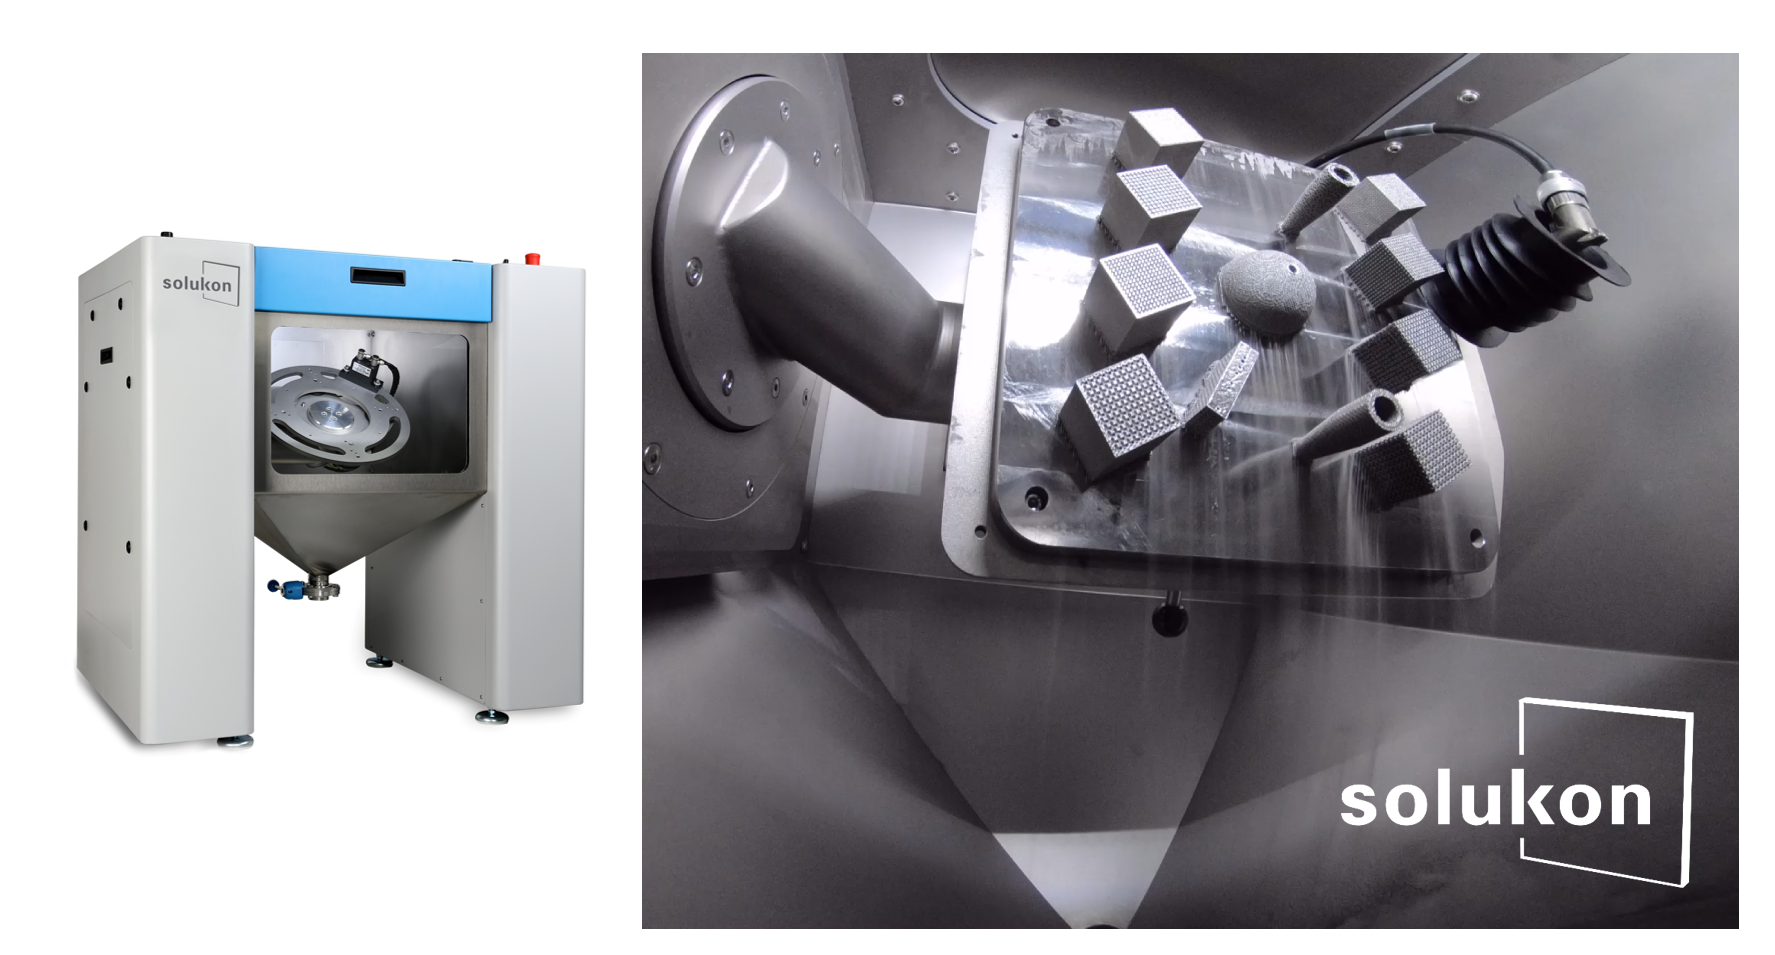 The SFM-AT200 depowdering system equipped with ultrasonic frequency excitation. Image via Solukon.